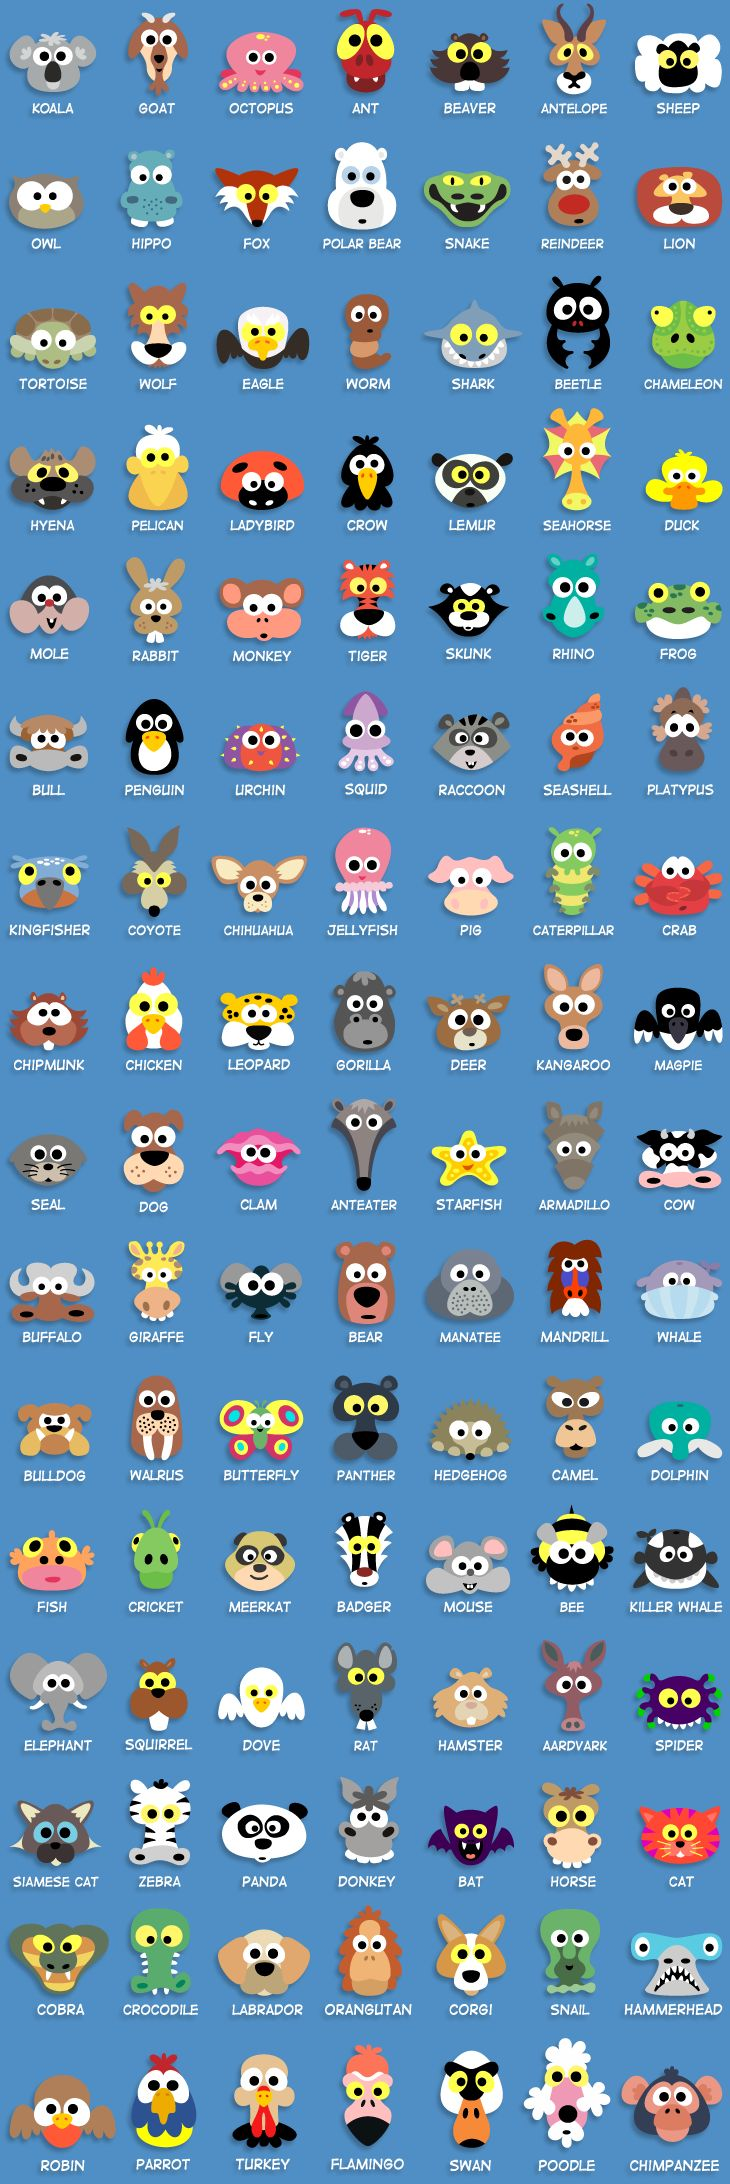 look at all the critters you can make with punches